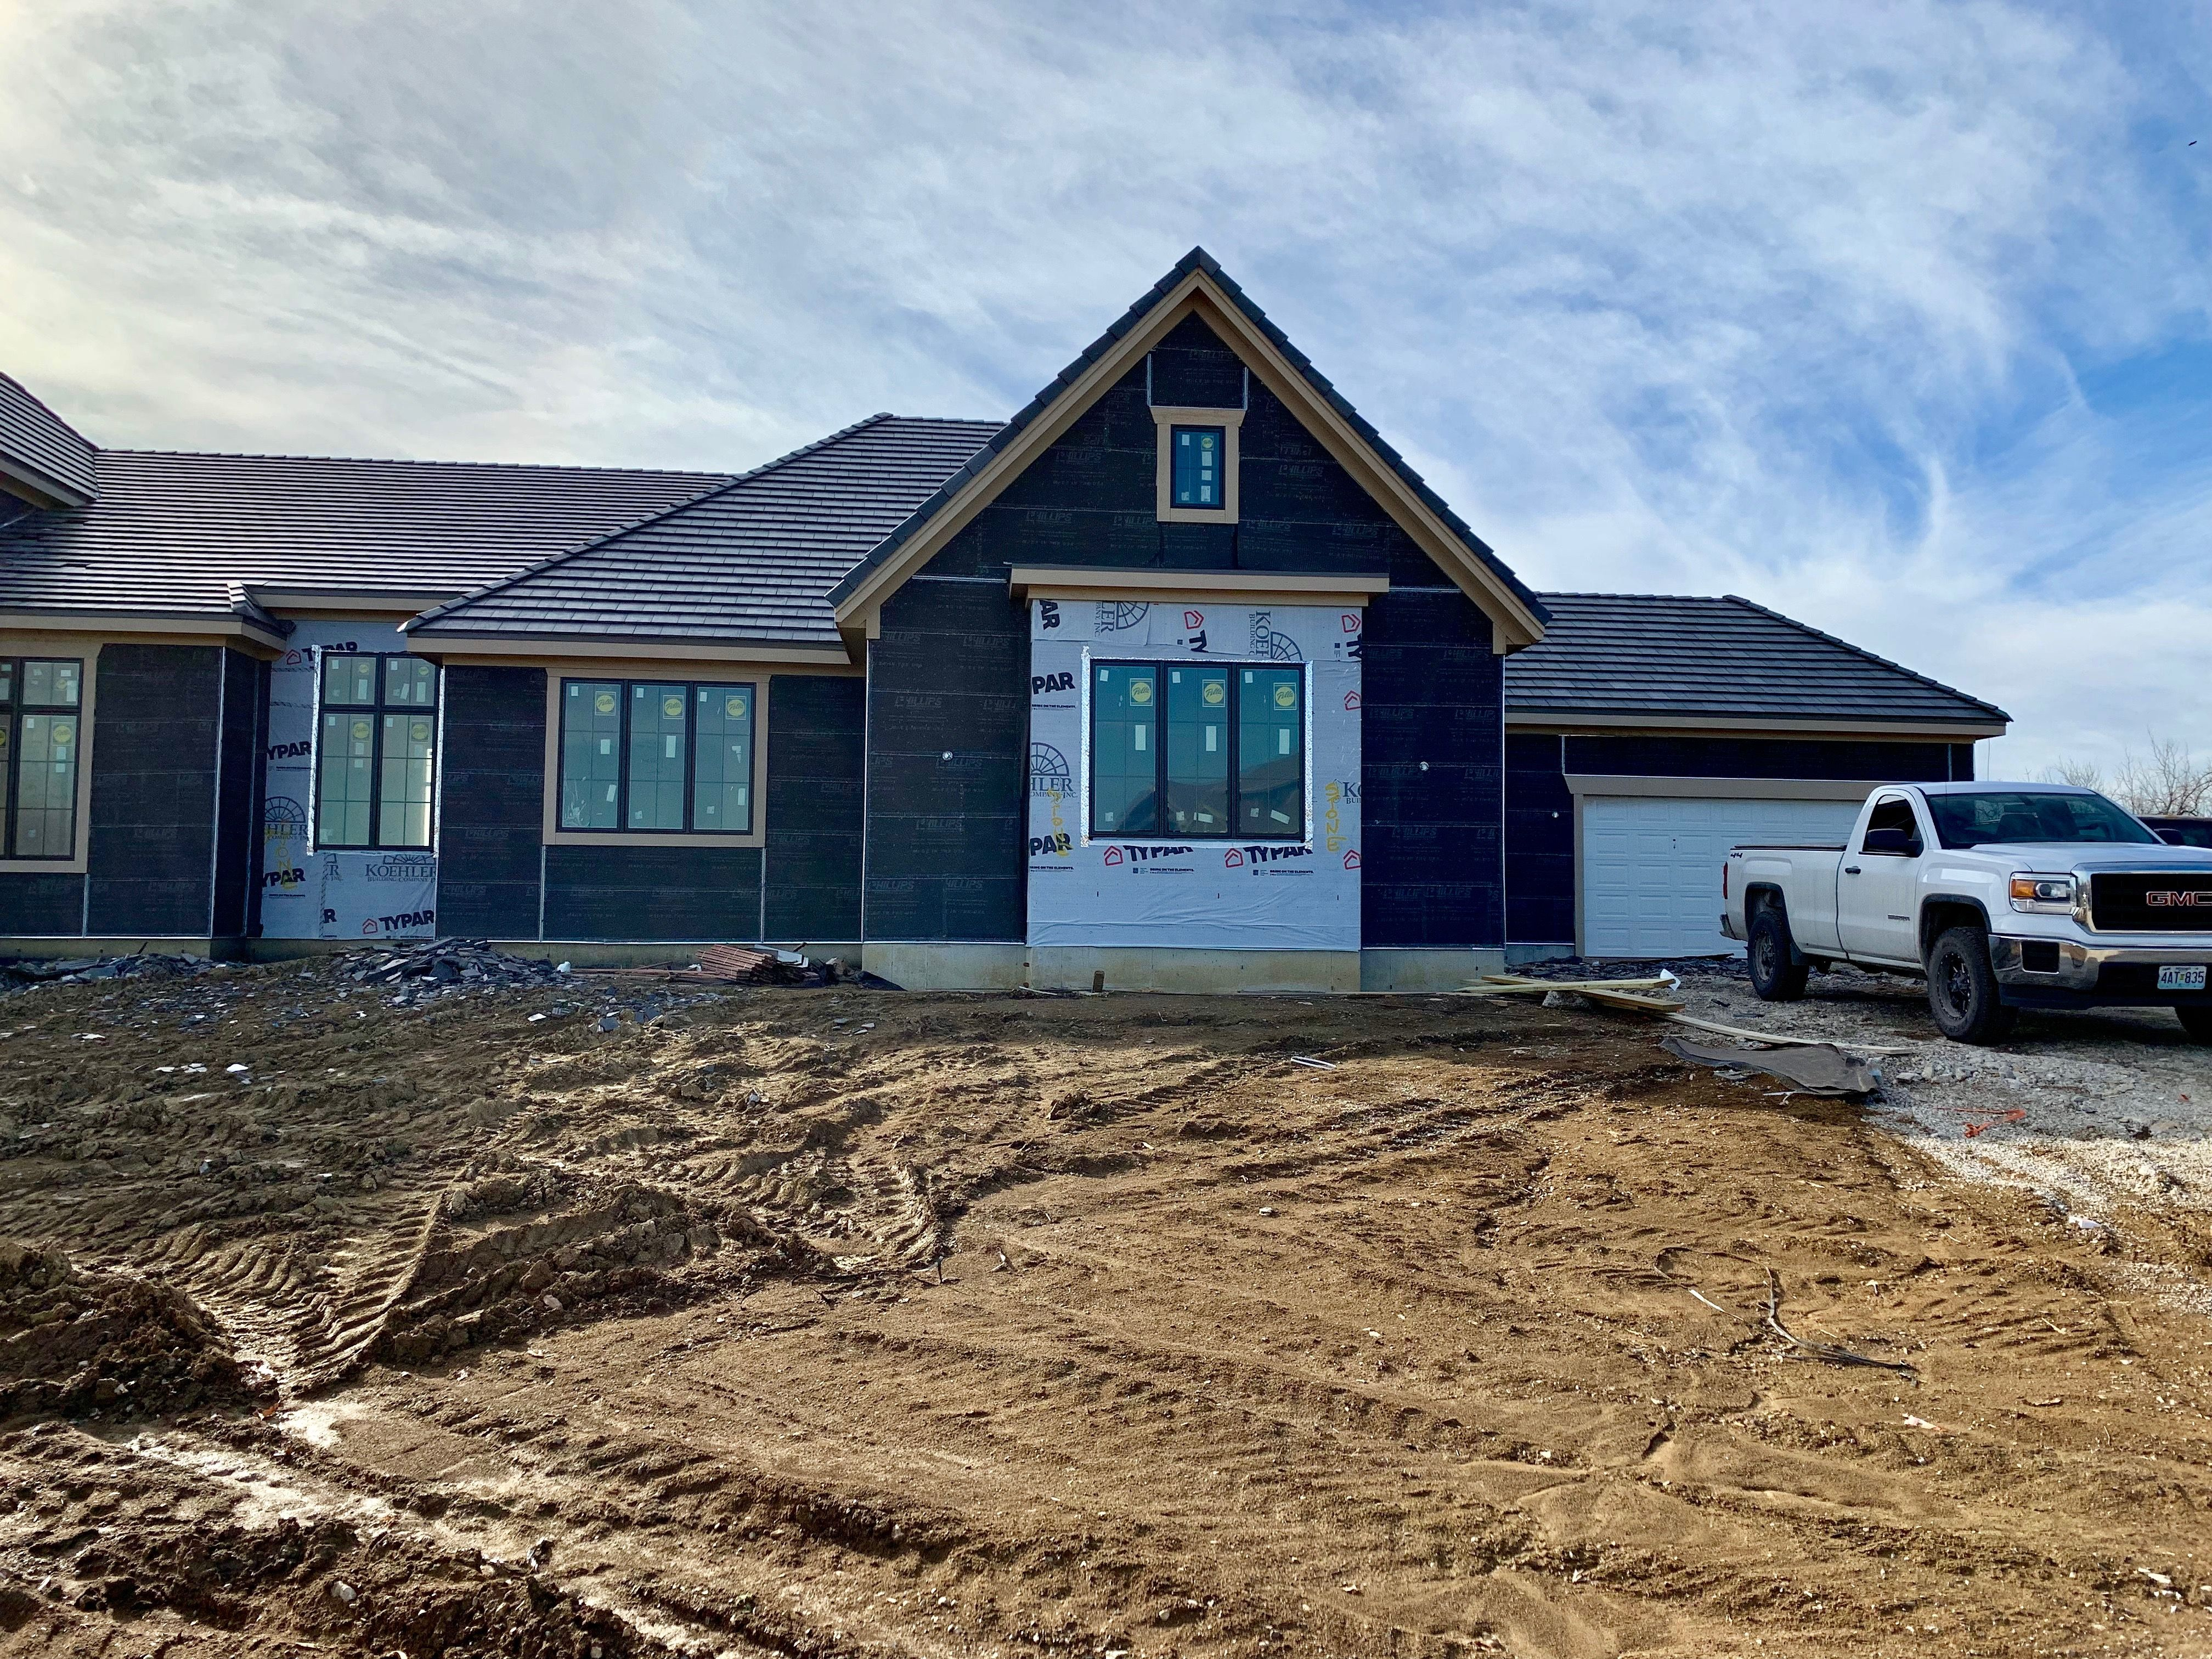 We Like What We See Happening In The Farm At Garnet Hill How About You Quinnkc Quinnrealestate Quinndev Real Estate Overland Park Ks Overland Park